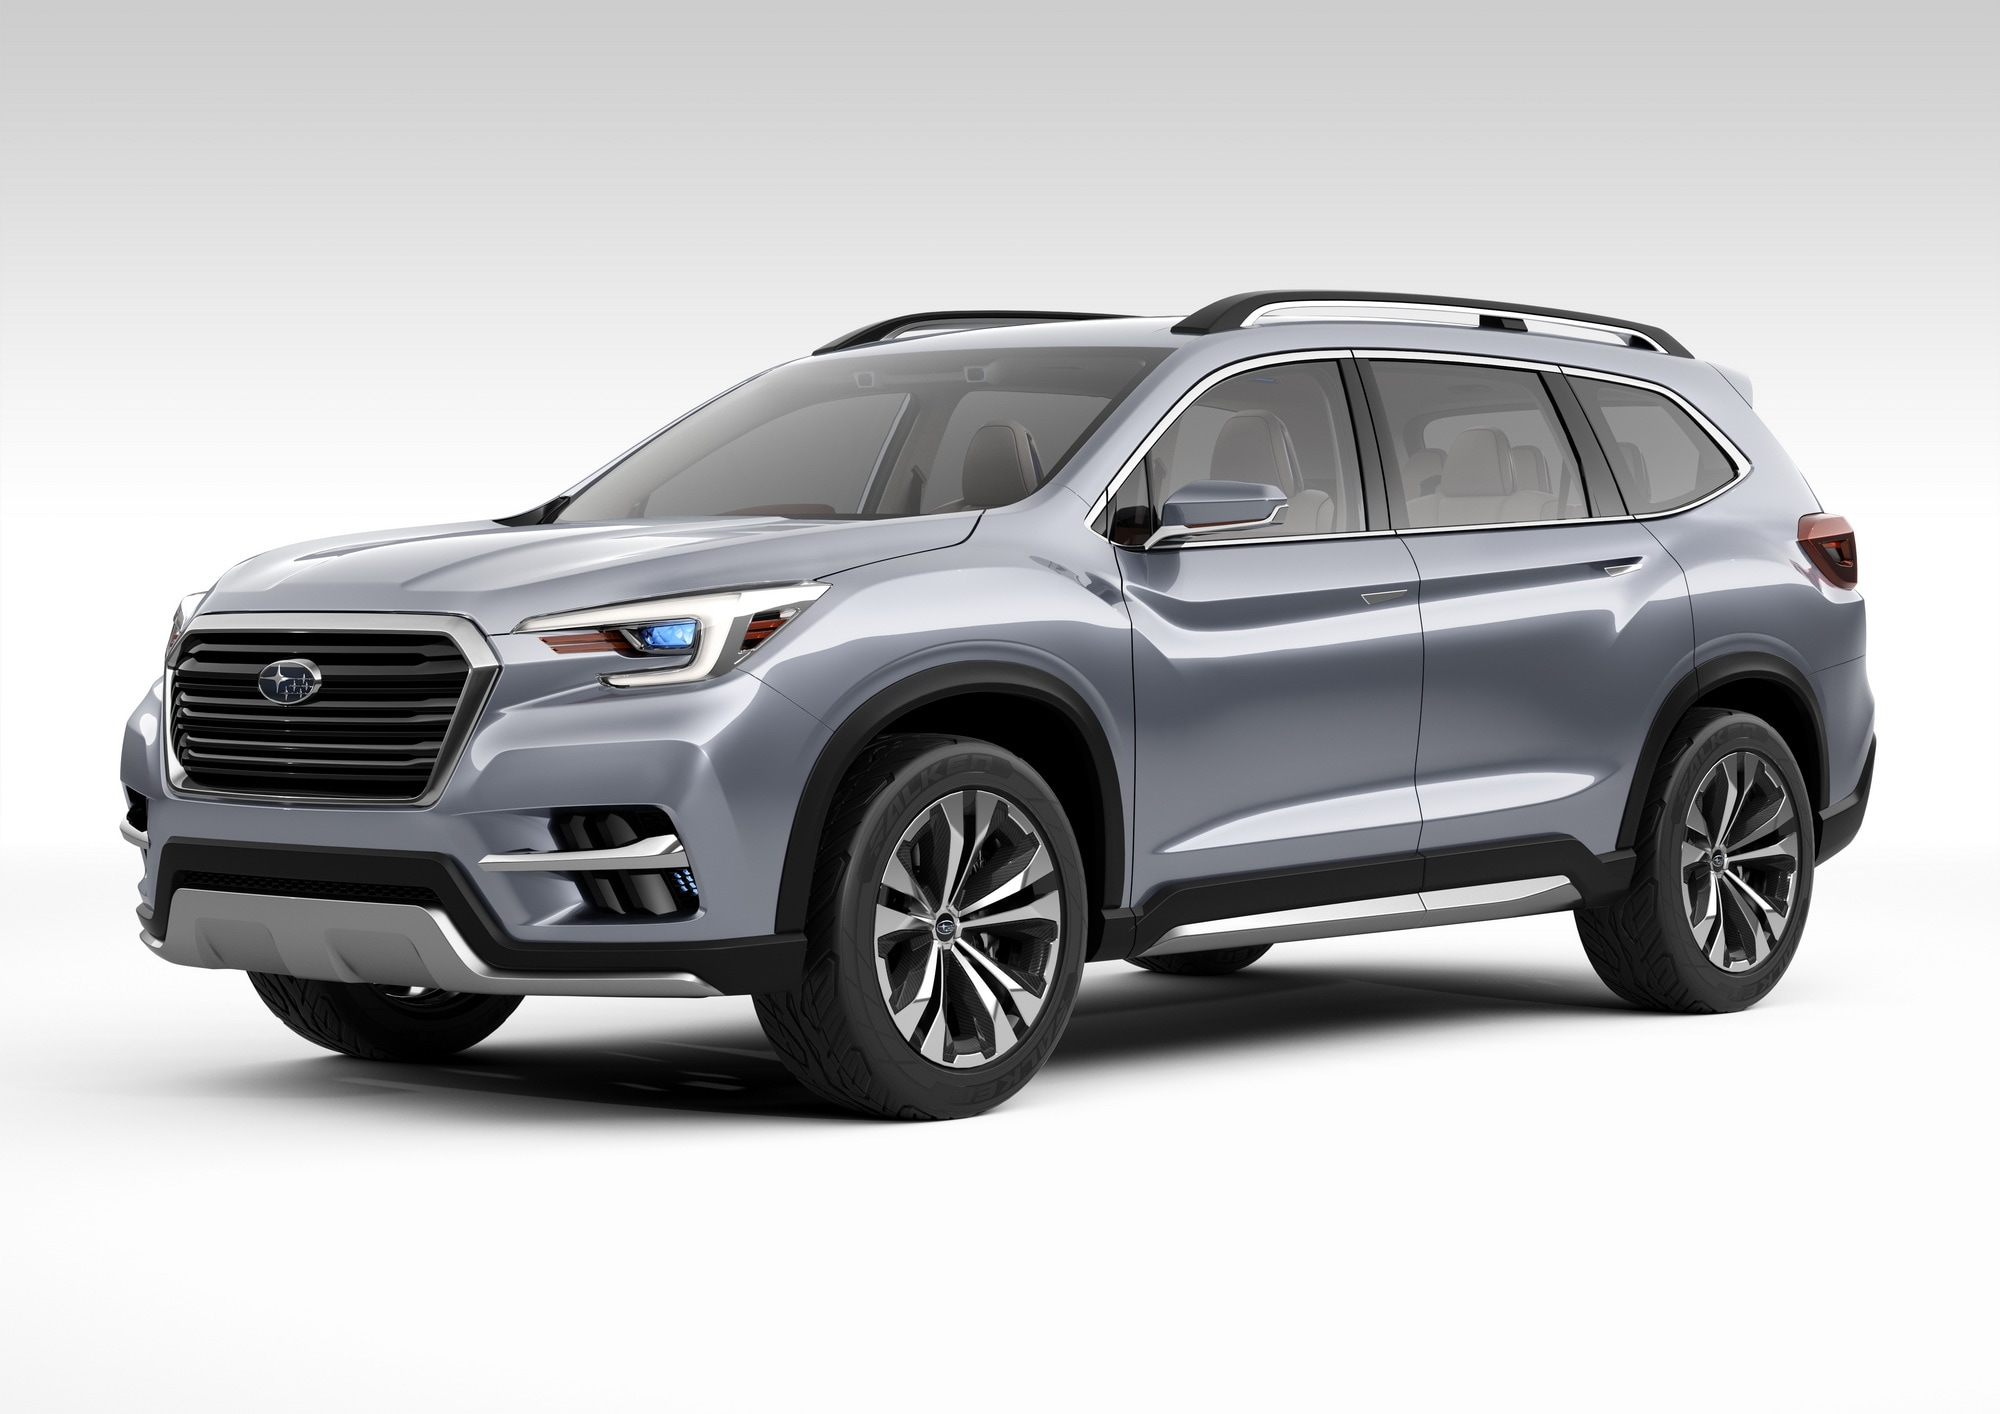 outback denver watch mazda serving technology groove tech service subaru features